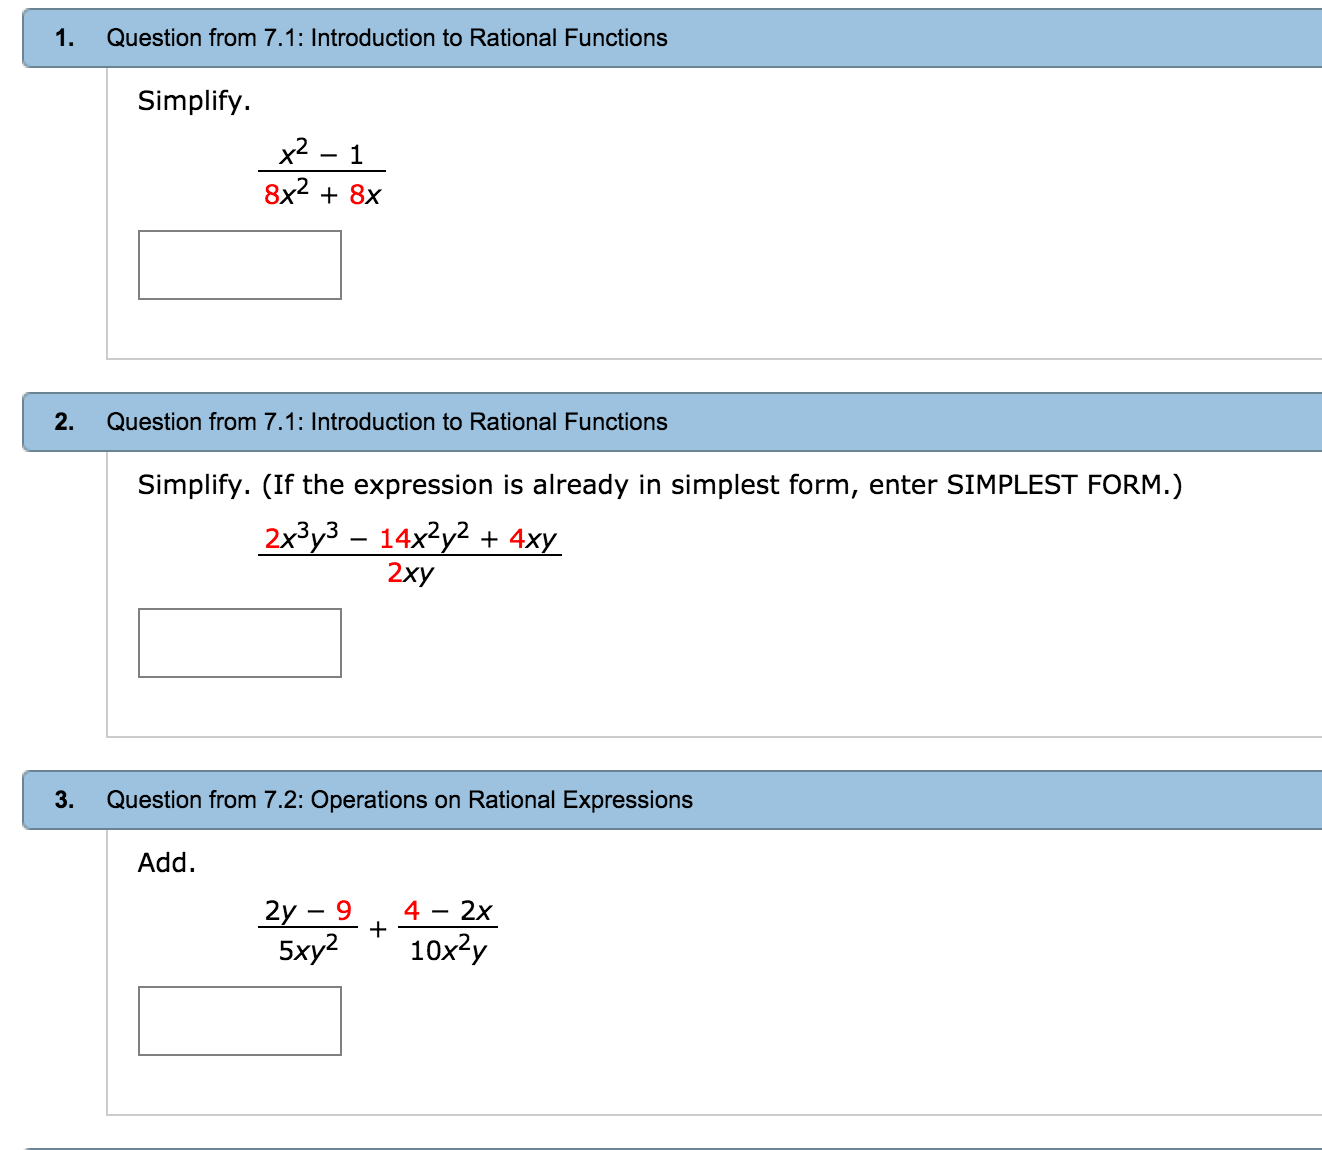 simplest form functions  Solved: Introduction To Rational Functions Simplify. X^13 ...